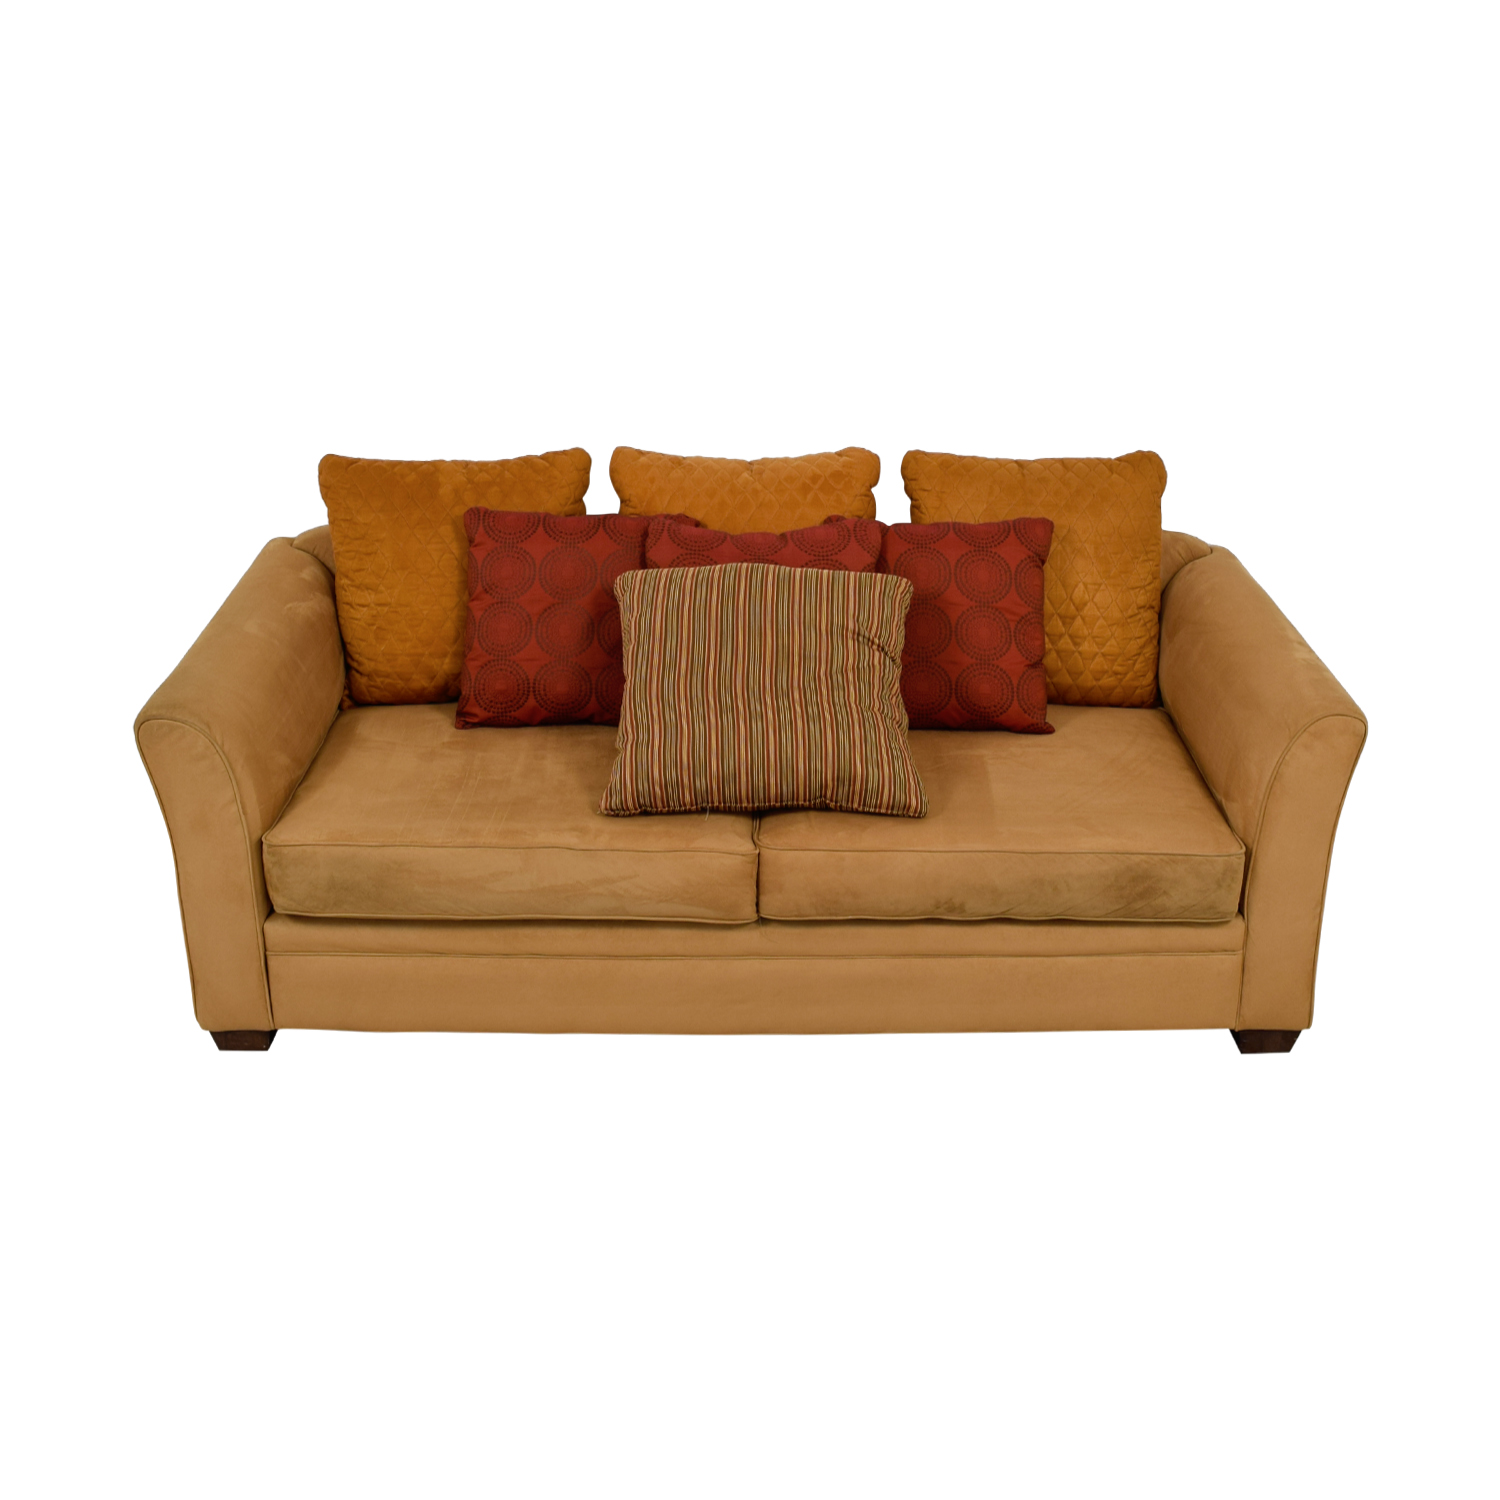 Raymour & Flanigan Raymour & Flanigan Camel Microsuede Two-Cushion Couch second hand